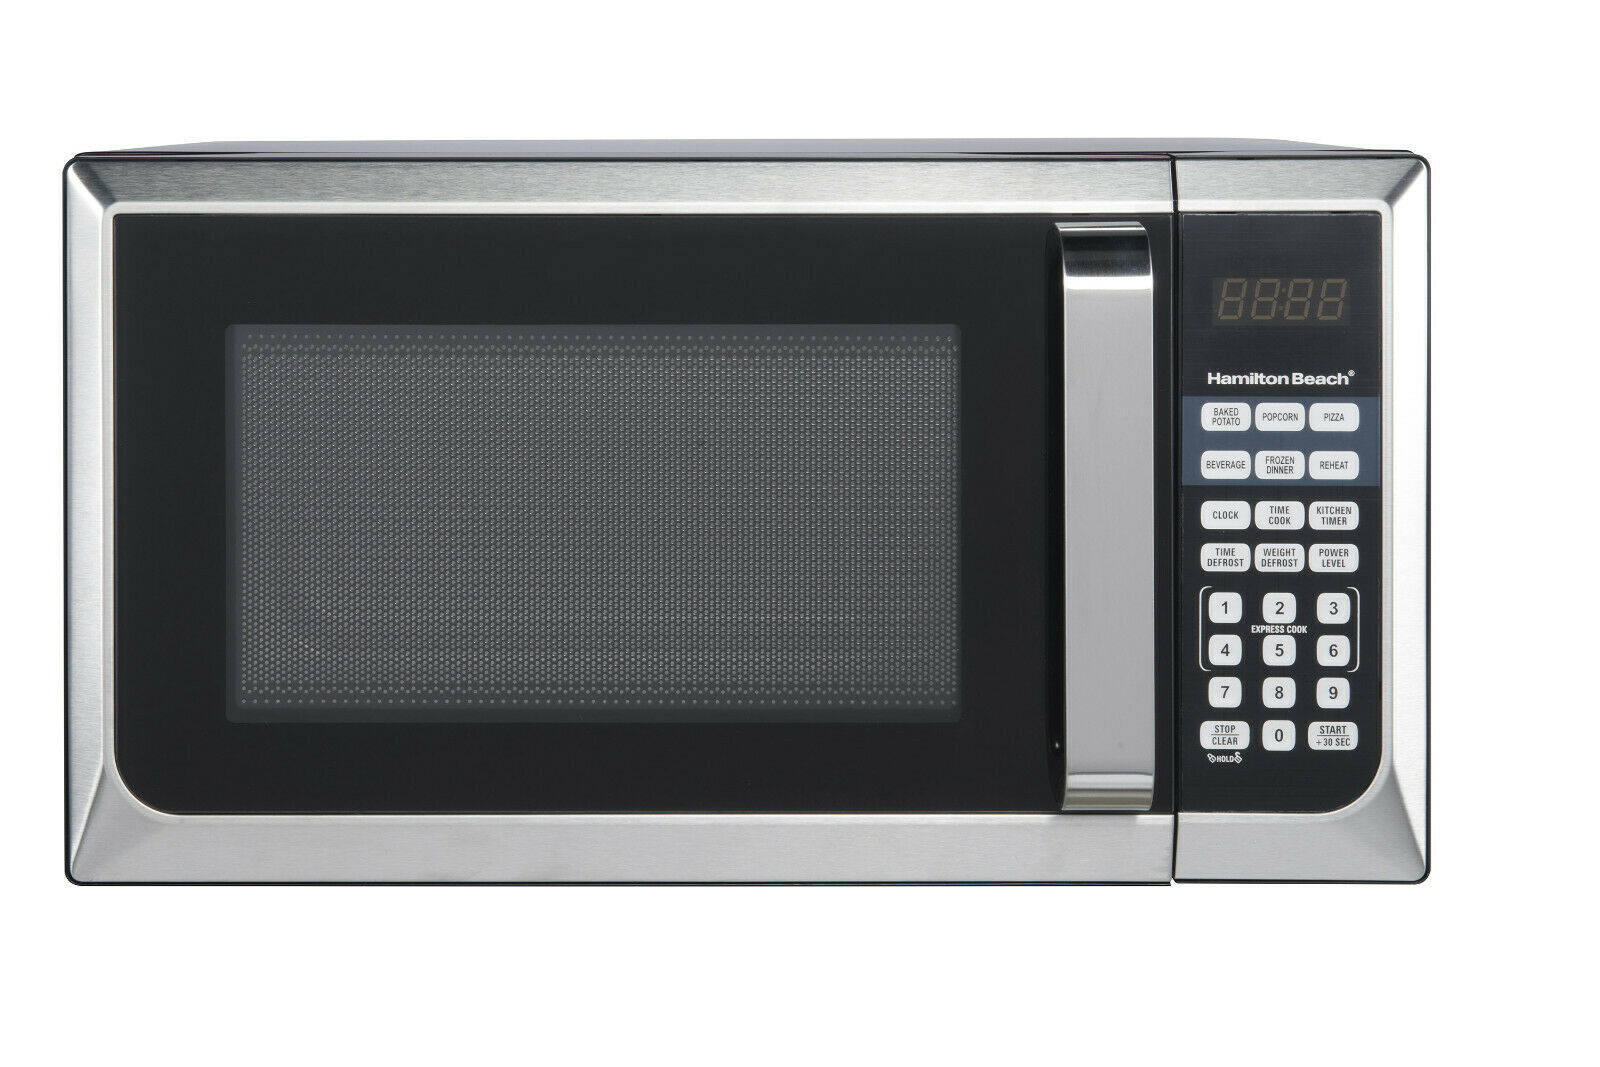 Hamilton Beach 900W 0.9 Cu. Ft. Counter-Top Microwave Oven, Stainless Steel NEW!